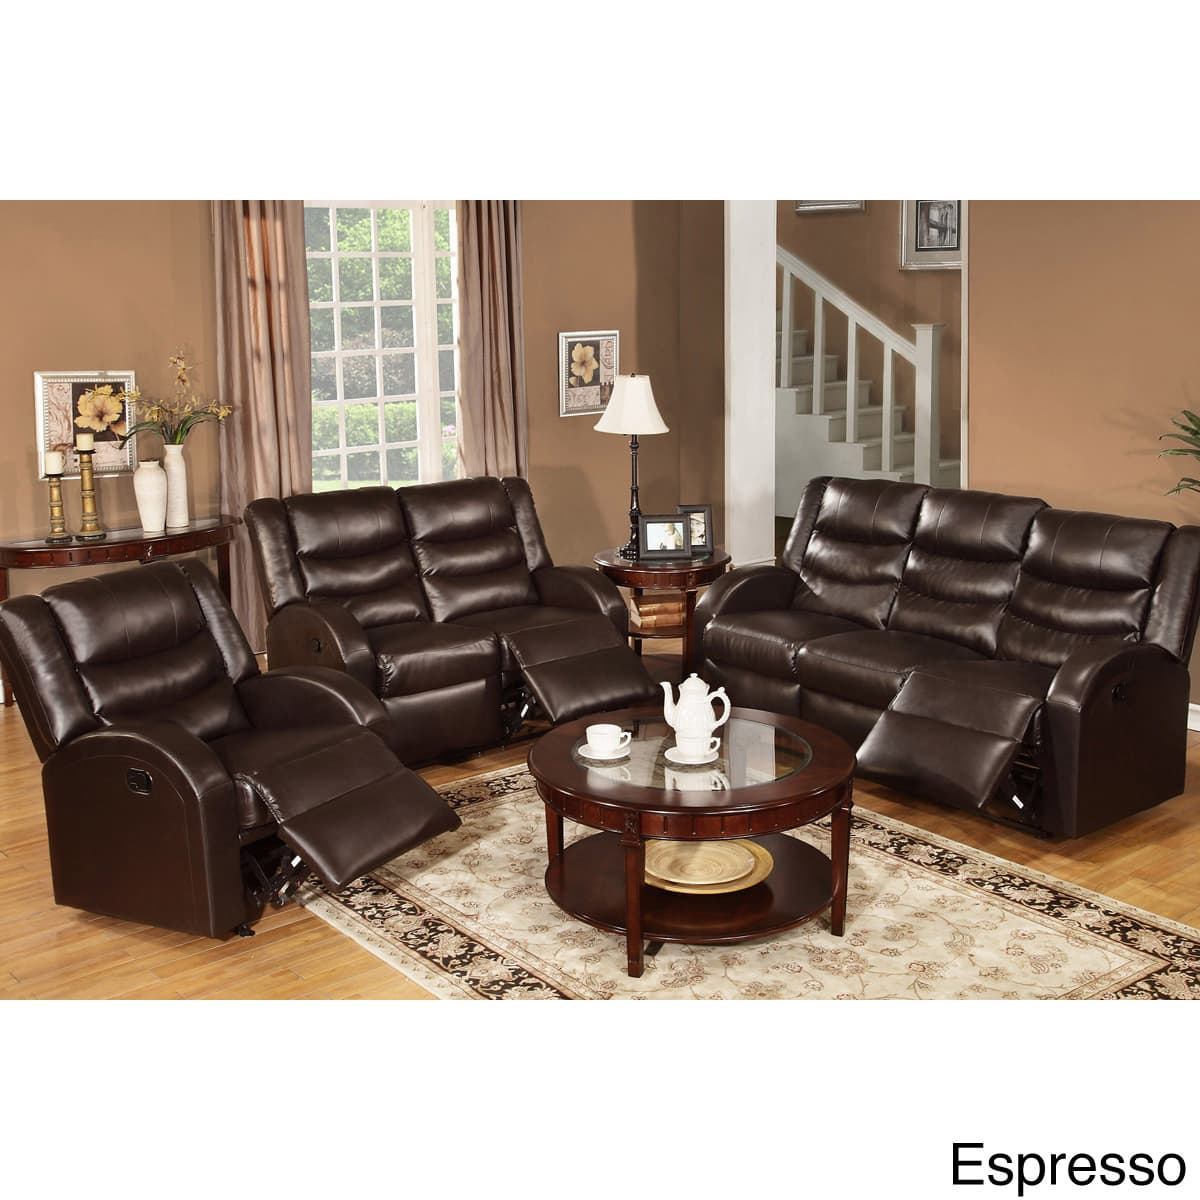 Living room furniture sets for less for Living room furniture 0 finance